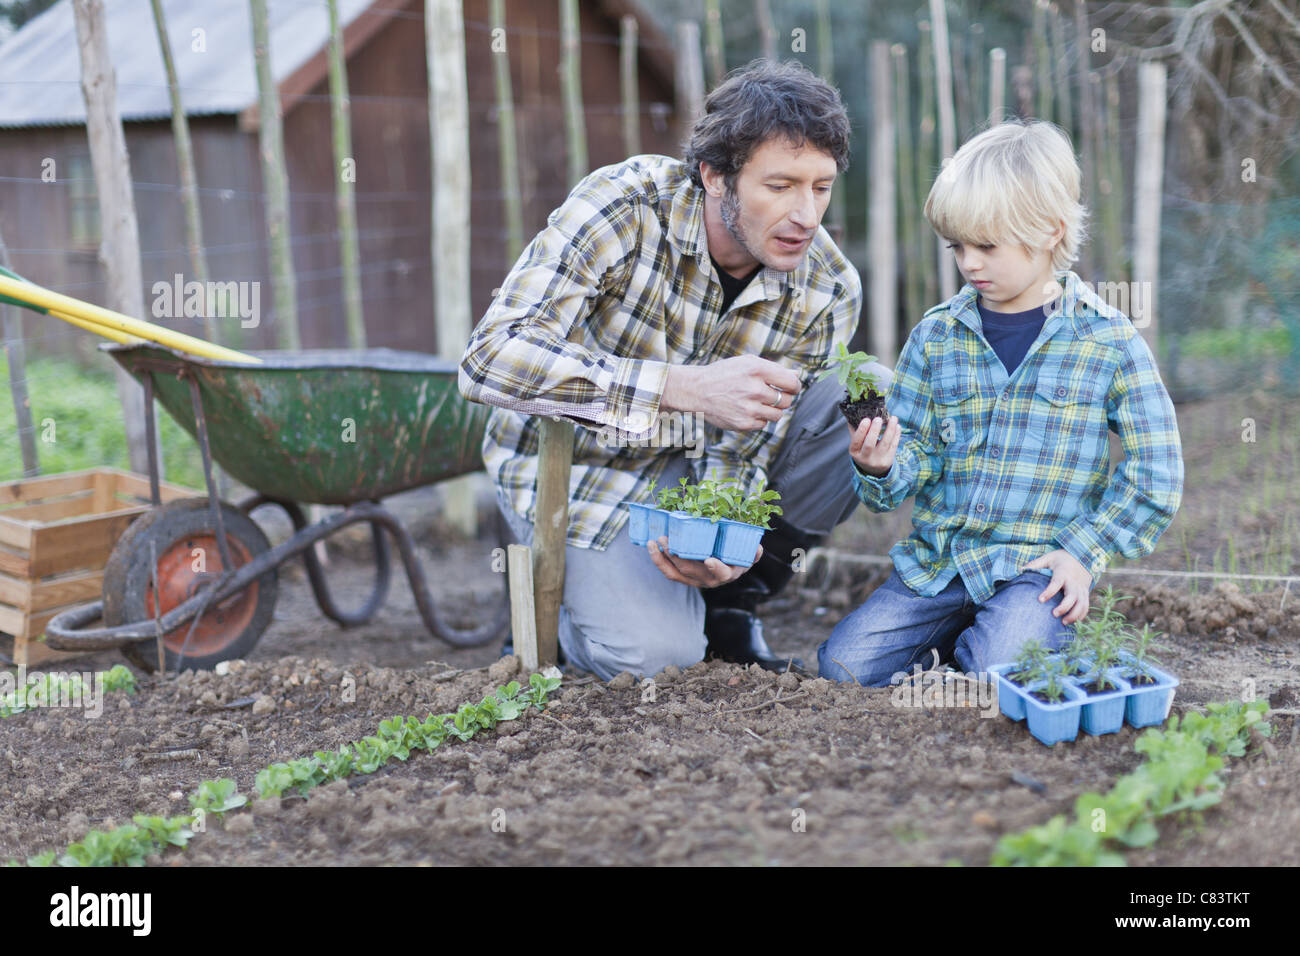 Father and son planting in rows - Stock Image